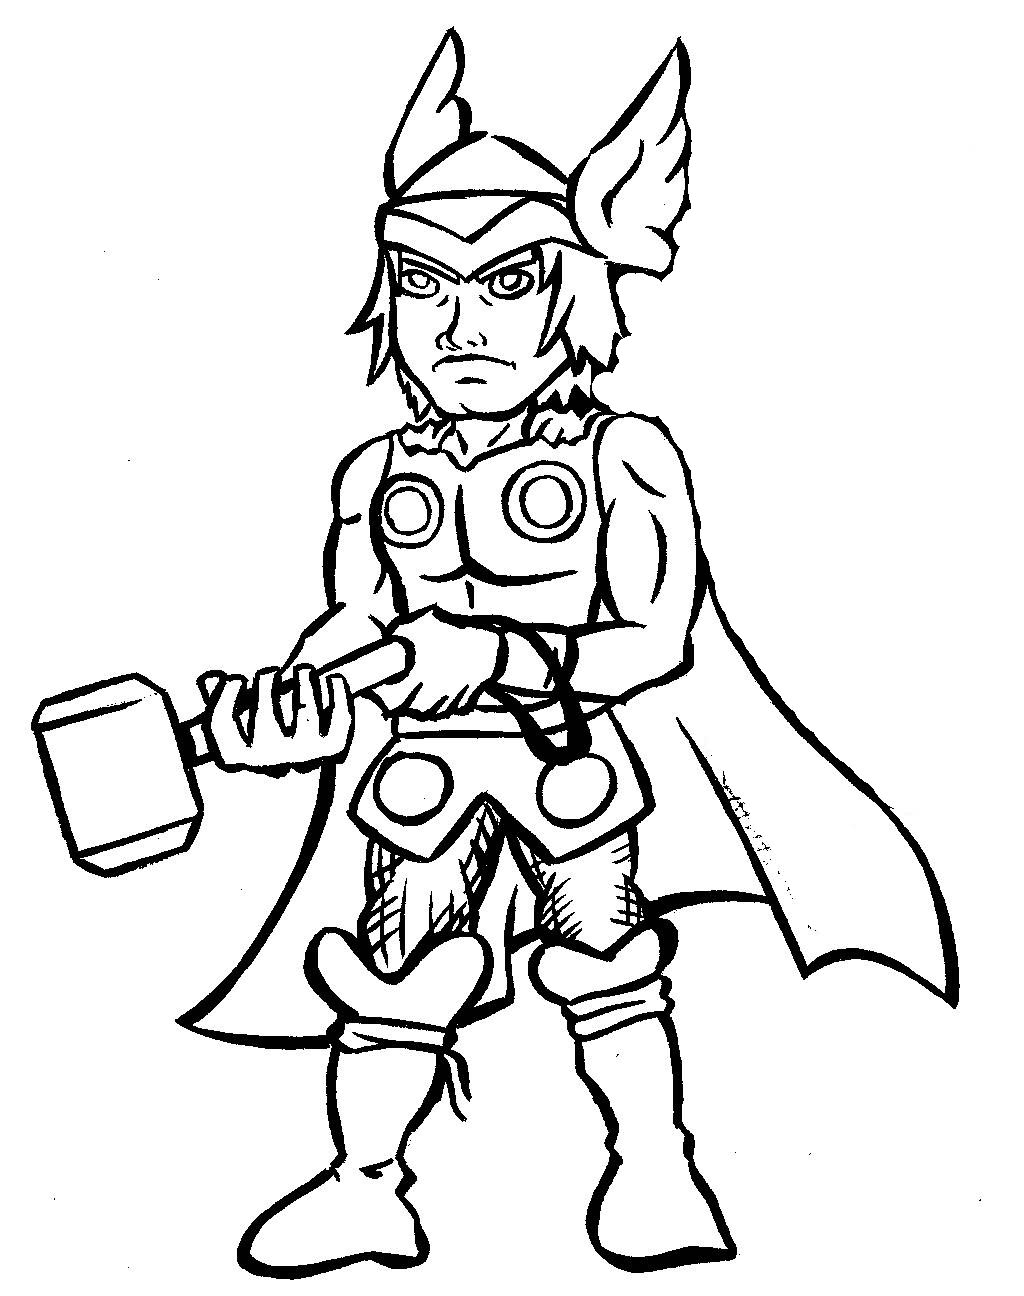 thor colouring pictures printable thor coloring pages for kids cool2bkids colouring thor pictures